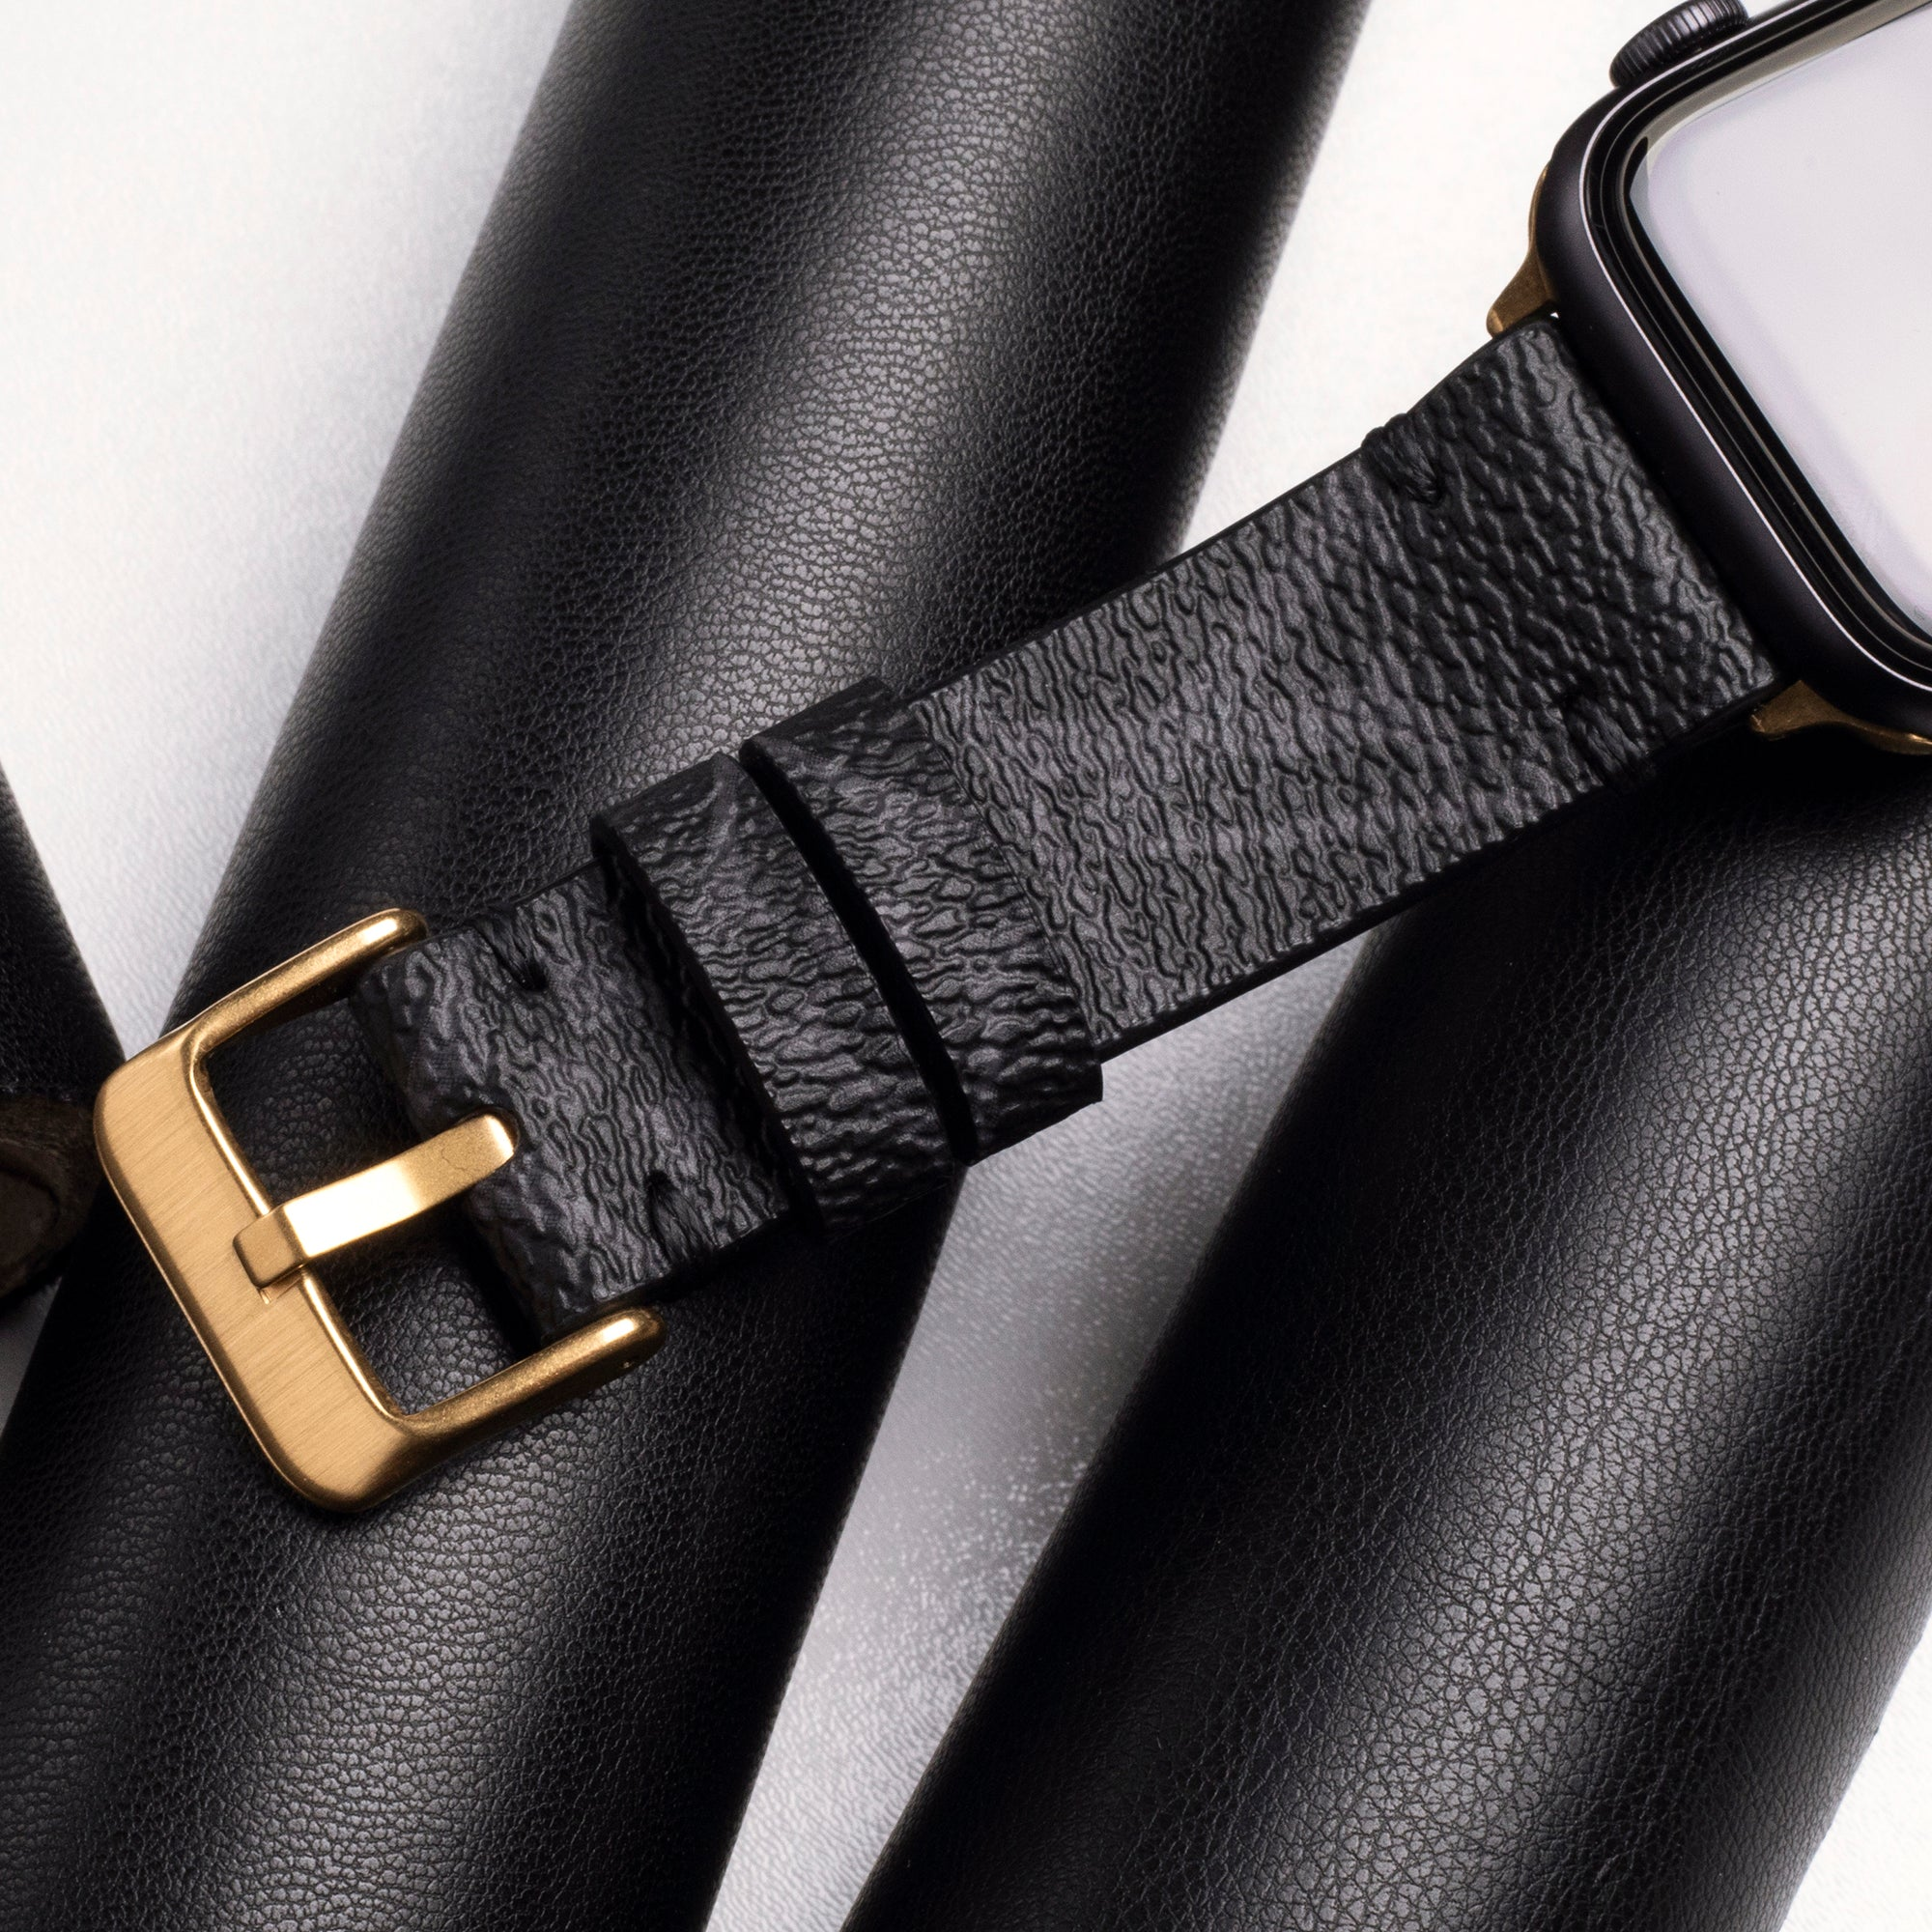 Lv Apple Watch Band Eclipse Monogram Apple Watch Bands By Paul